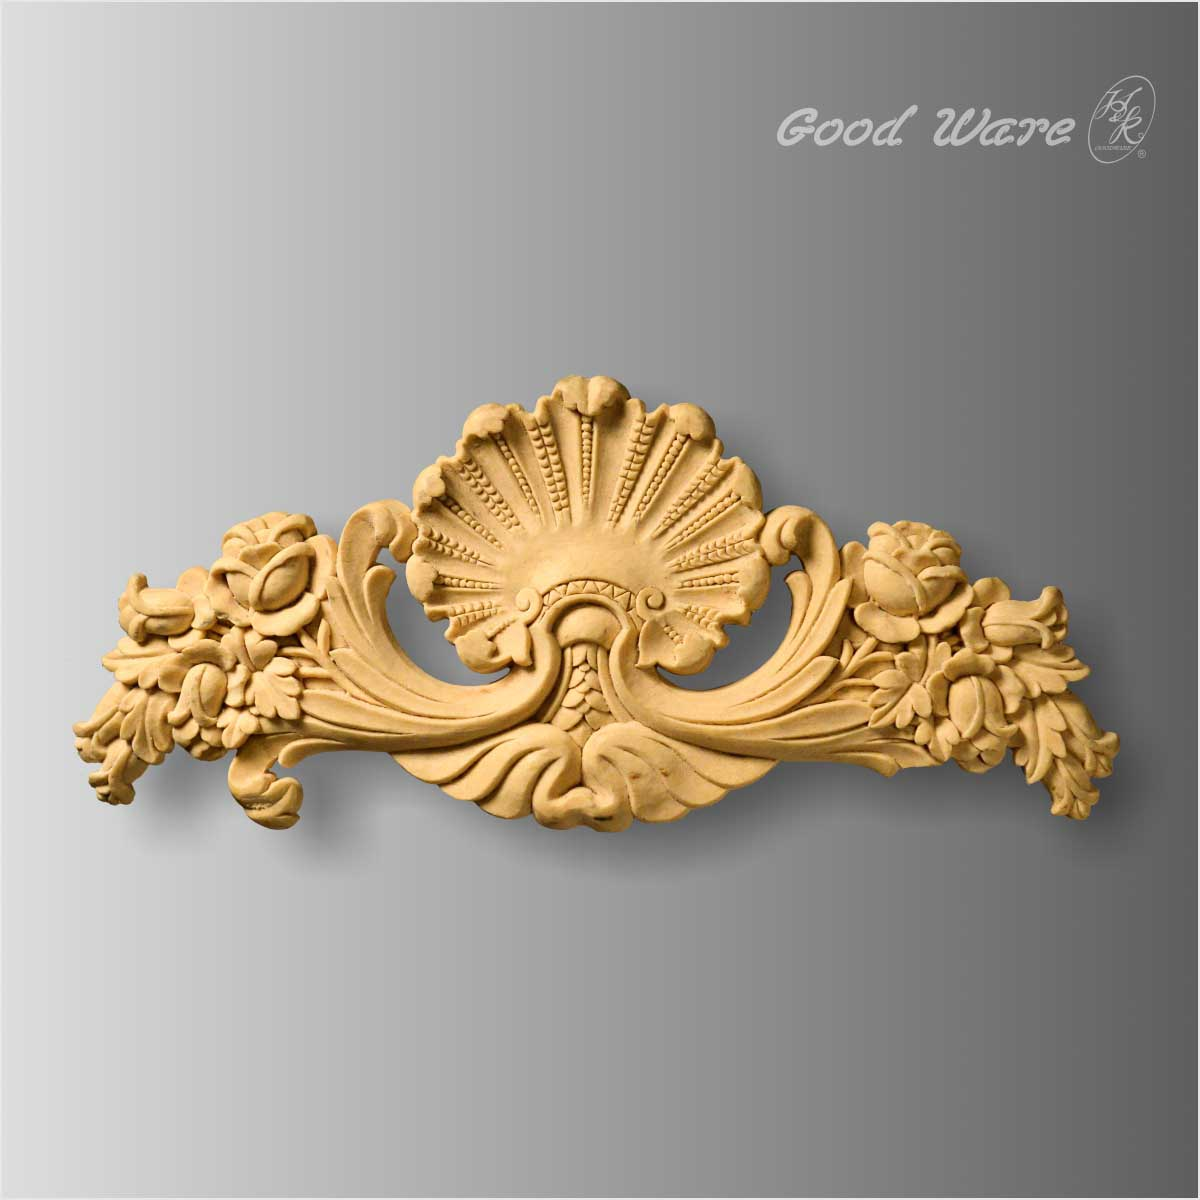 Faux wood shell and floral onlay applique